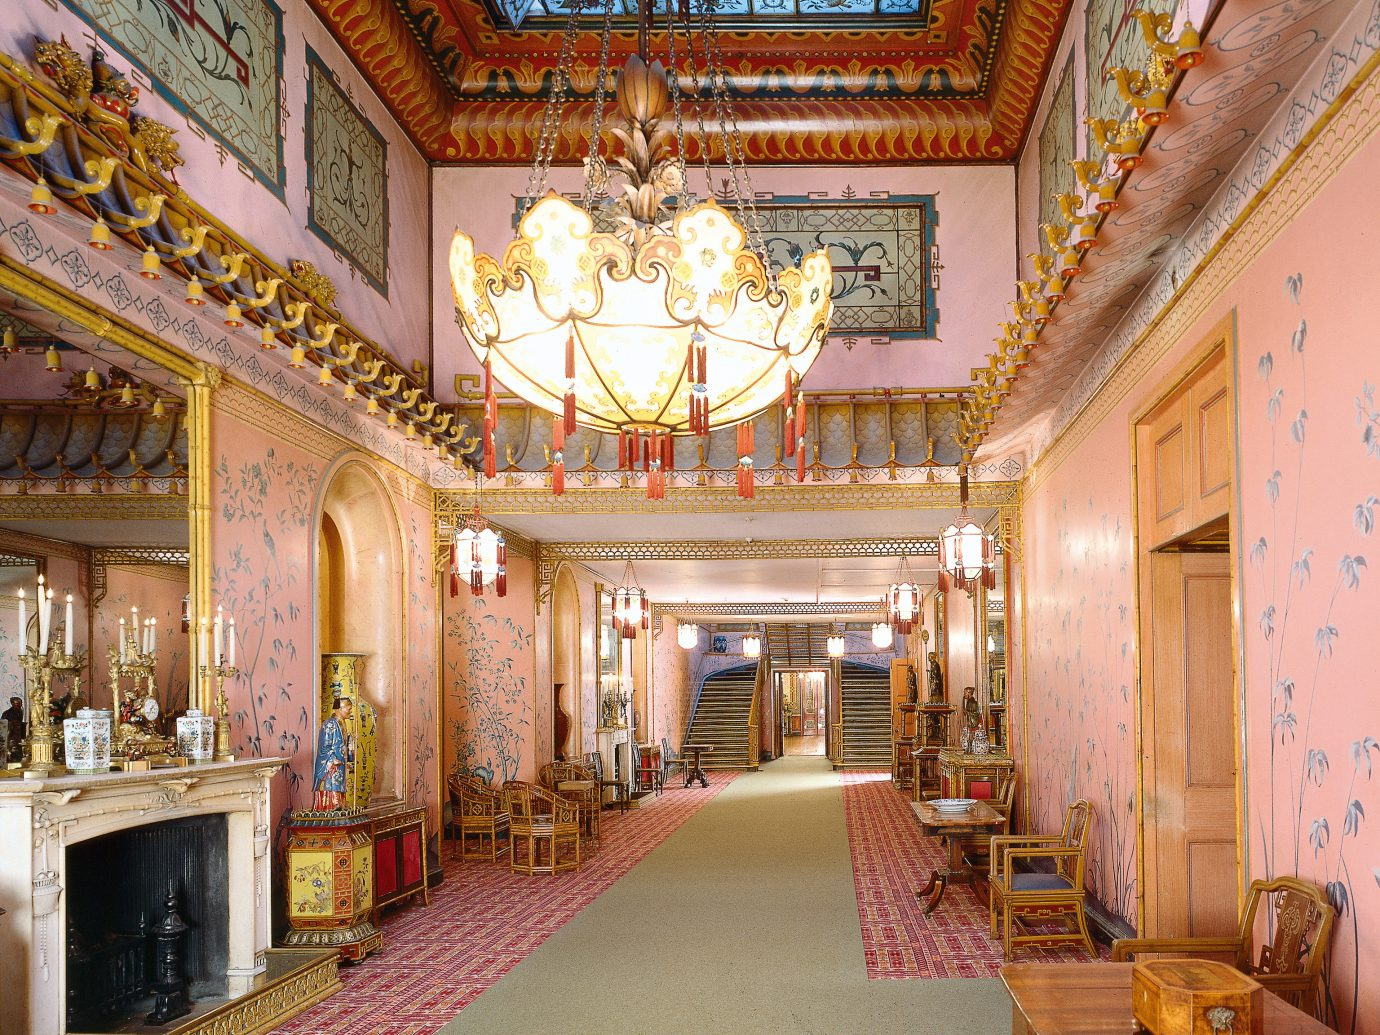 Trip Ideas indoor Lobby building palace estate interior design mansion function hall ballroom place of worship hall synagogue